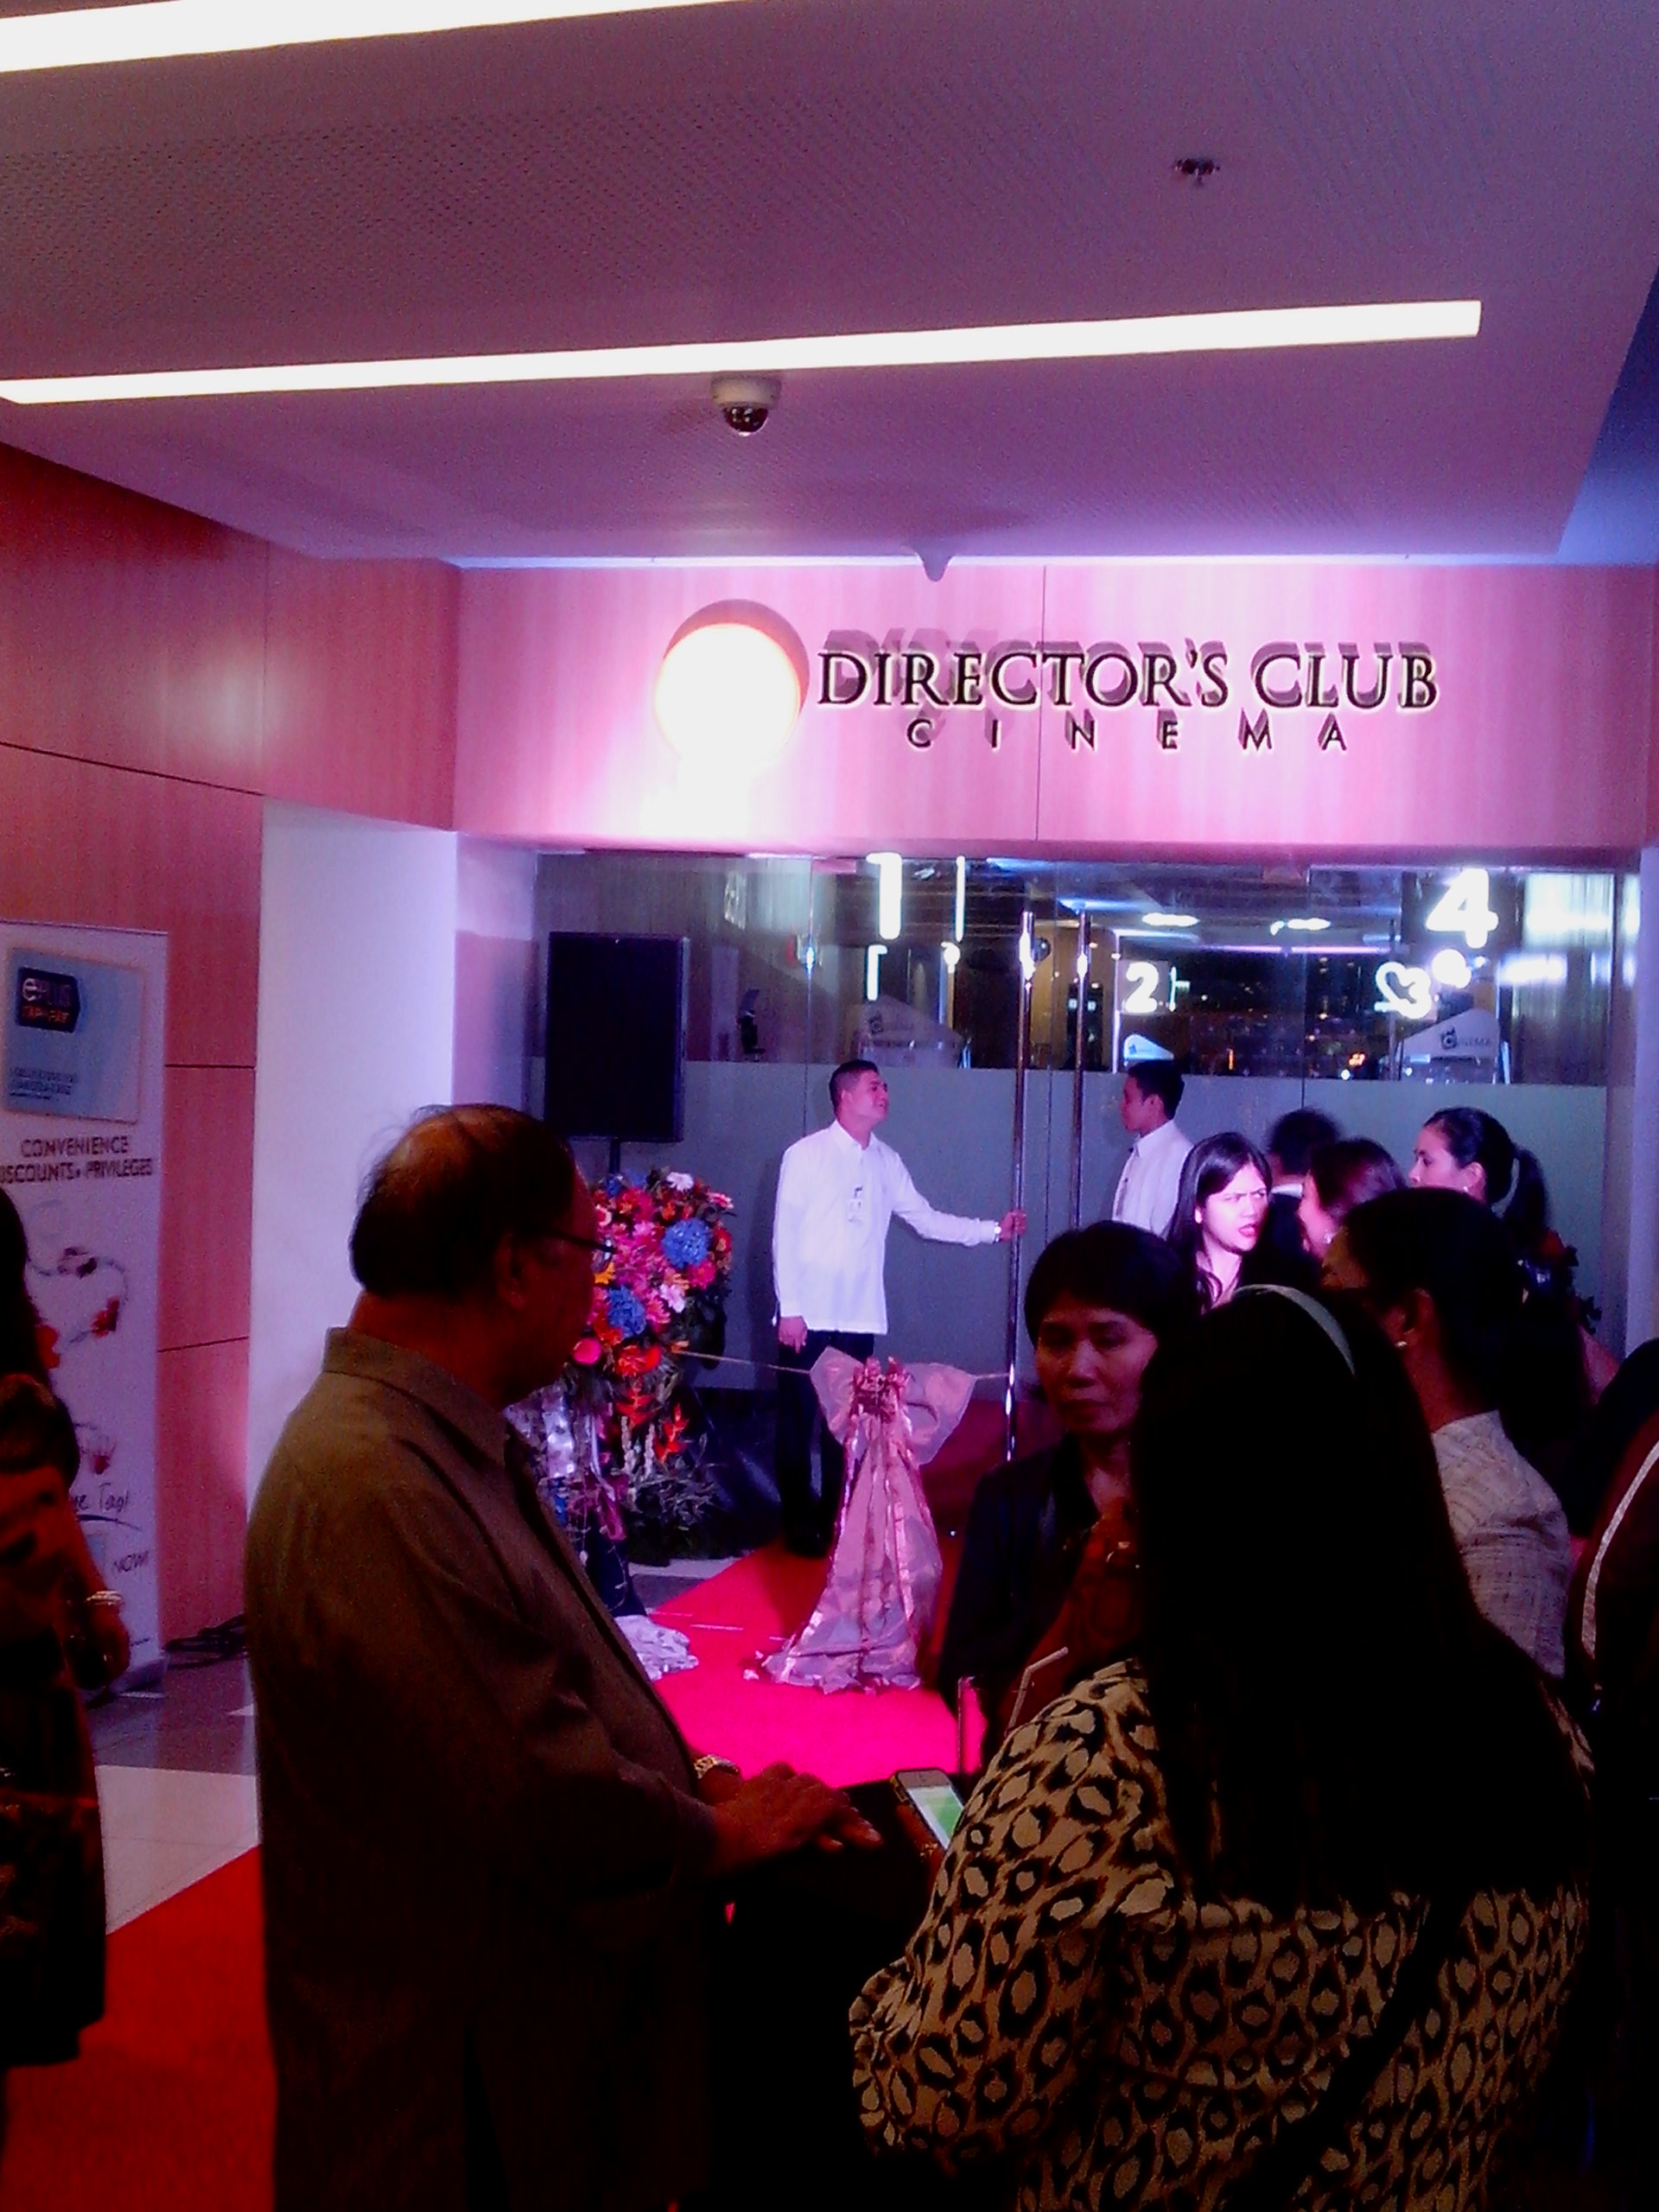 SM Cinemas 47th Branch in BF Offers Four Directors Club